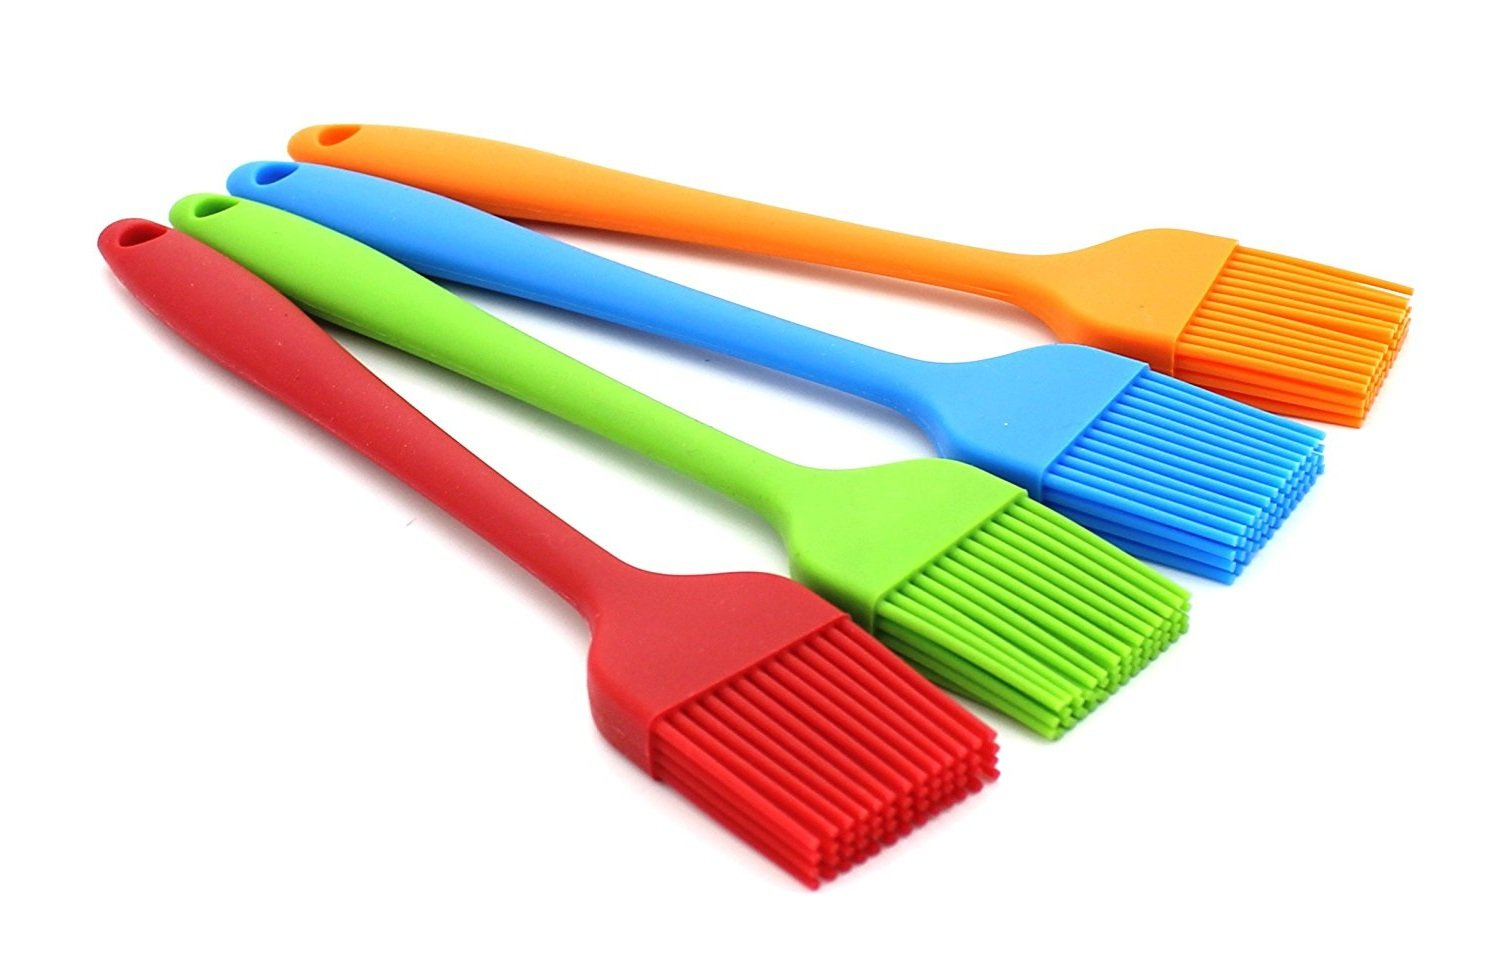 Hosaire Silicone Pastry Brush Basting Brush,BBQ Brush,Essential Cooking Gadget 8.2 Inch Long (Random color)